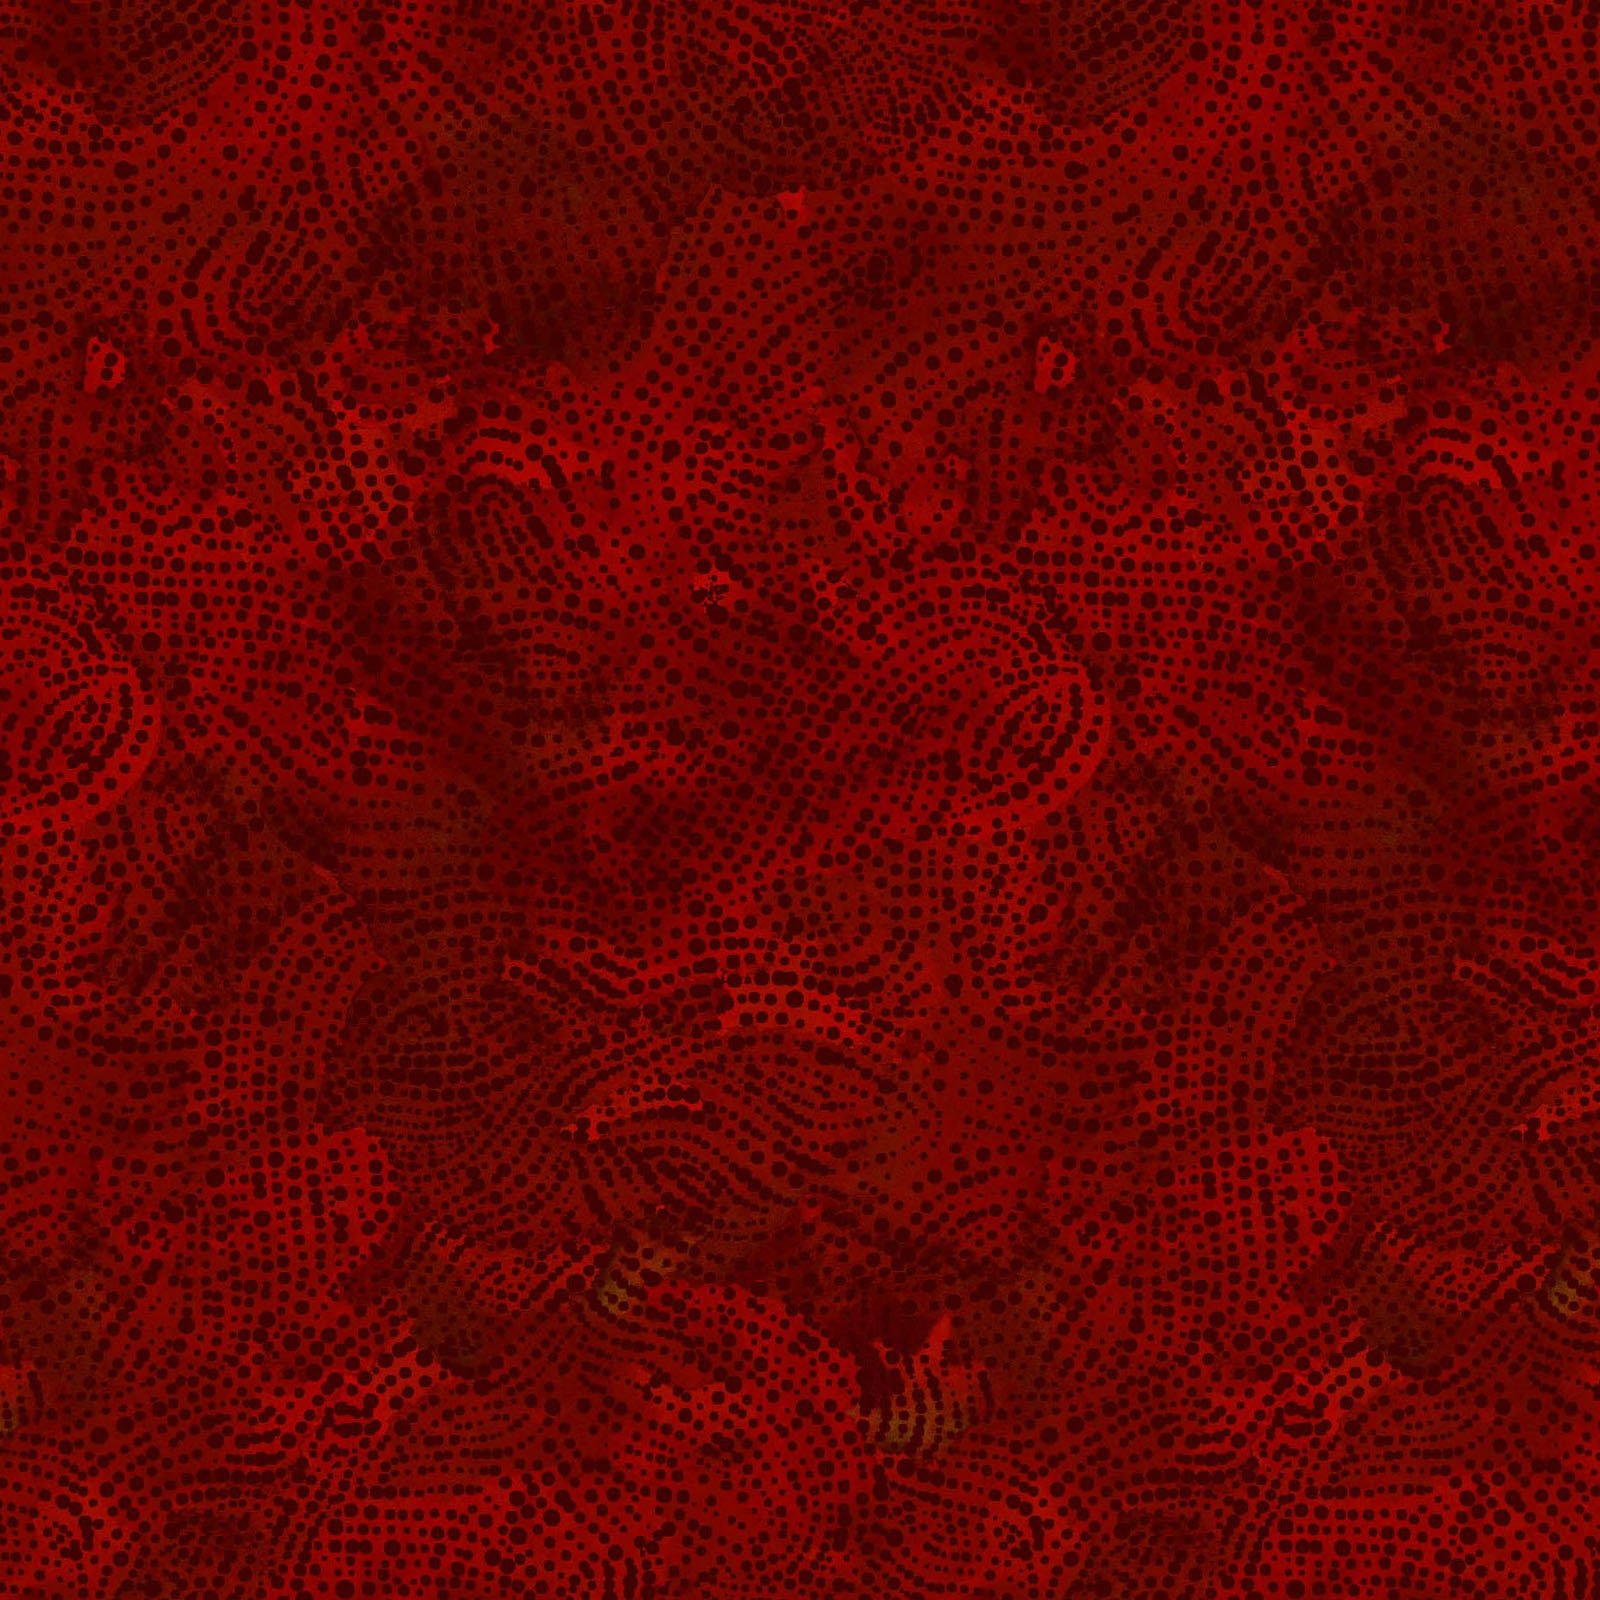 SERE-4492 DR - SERENITY BY JETTI HOME DK RED - ARRIVING IN JULY 2021